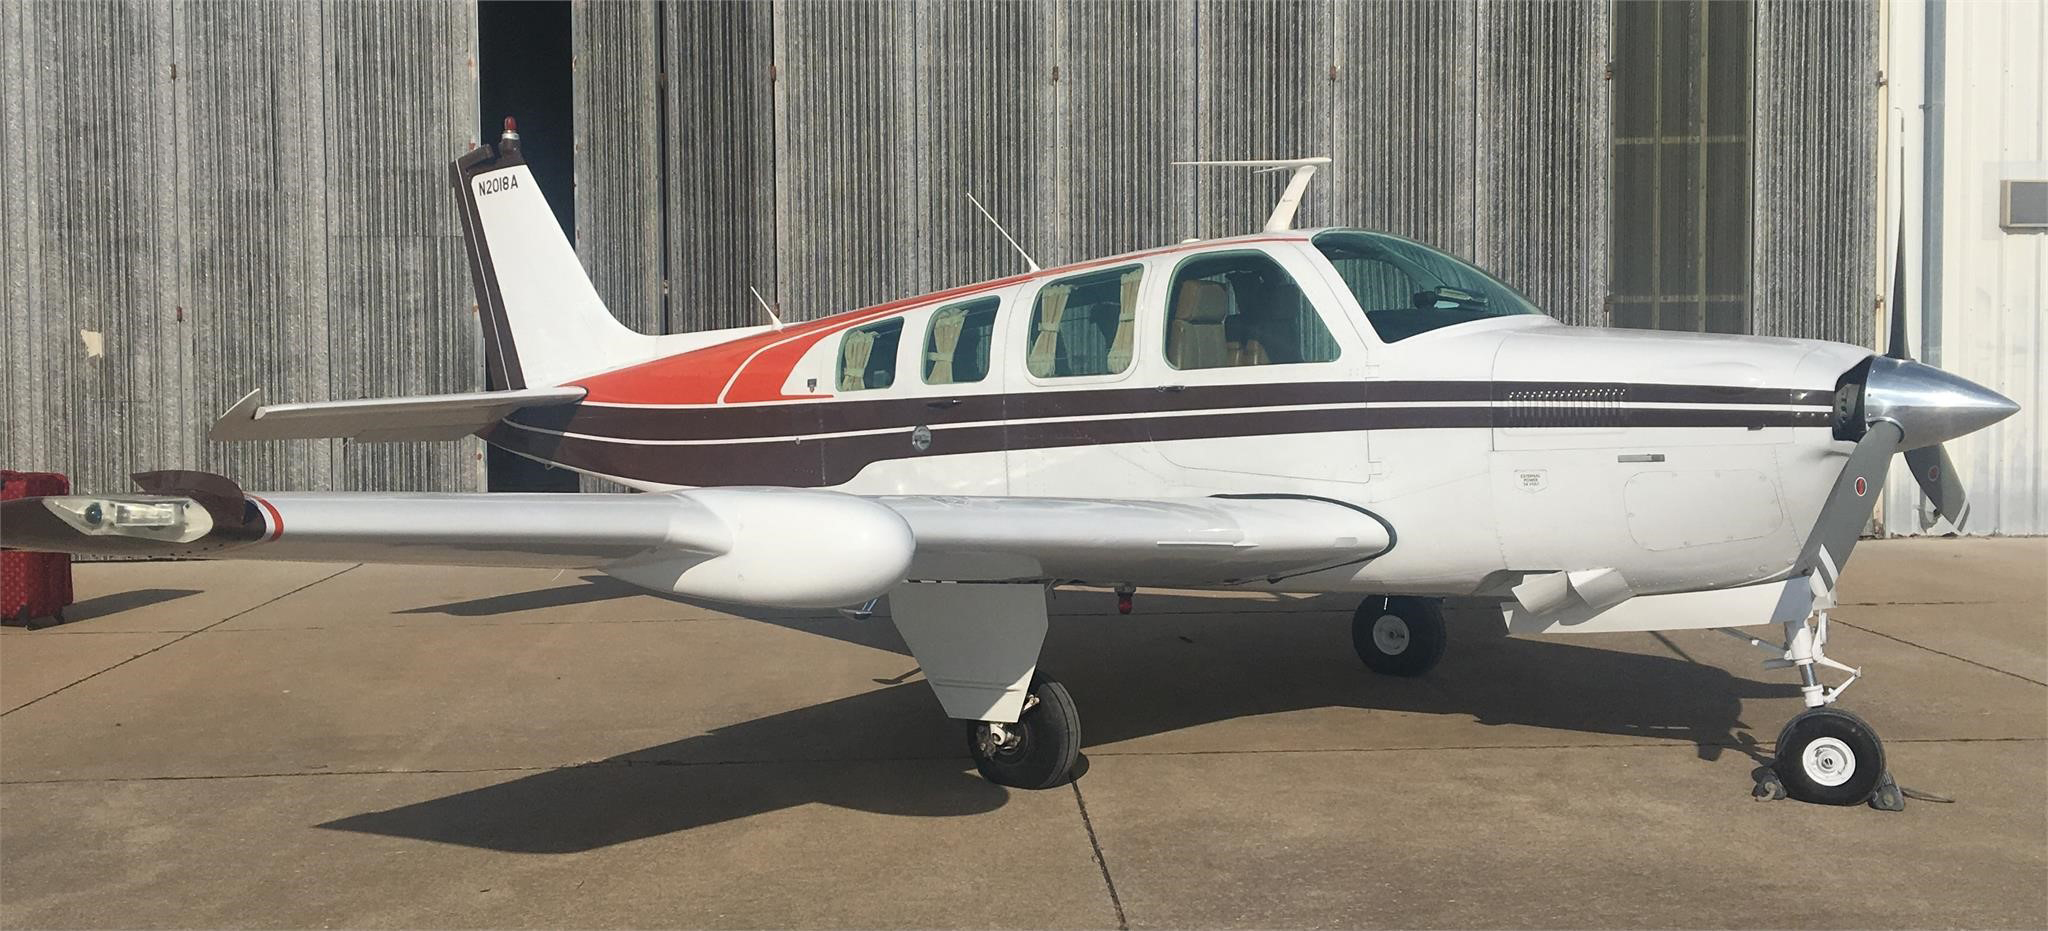 Aircraft Listing - Bonanza A36 listed for sale